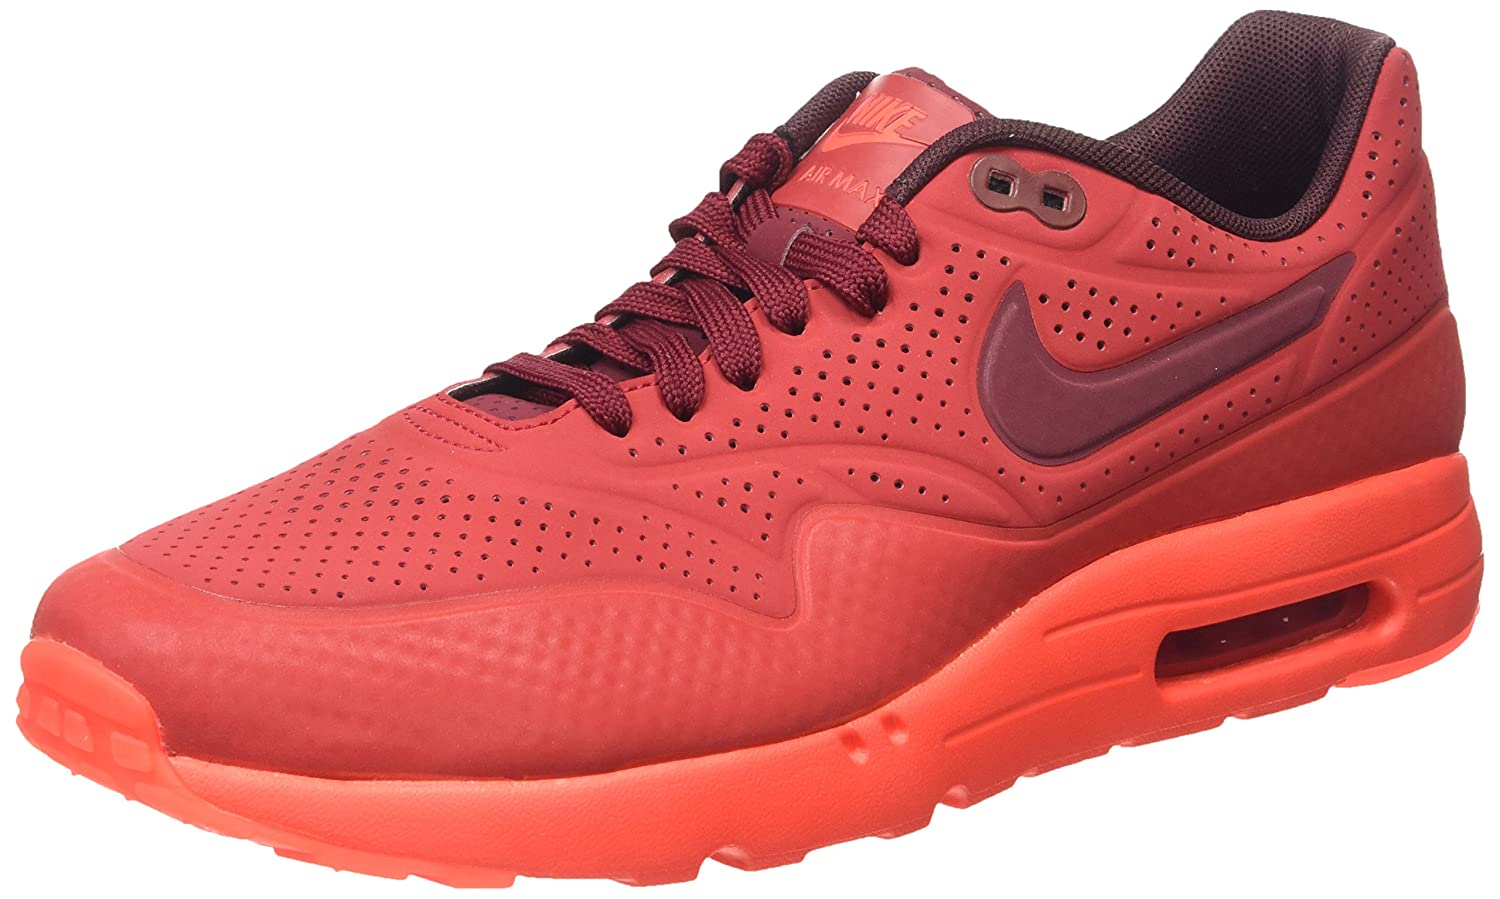 reputable site 9d943 67101 Amazon.com   Nike Men s Air Max 1 Ultra Moire Sports Running Shoes   Road  Running